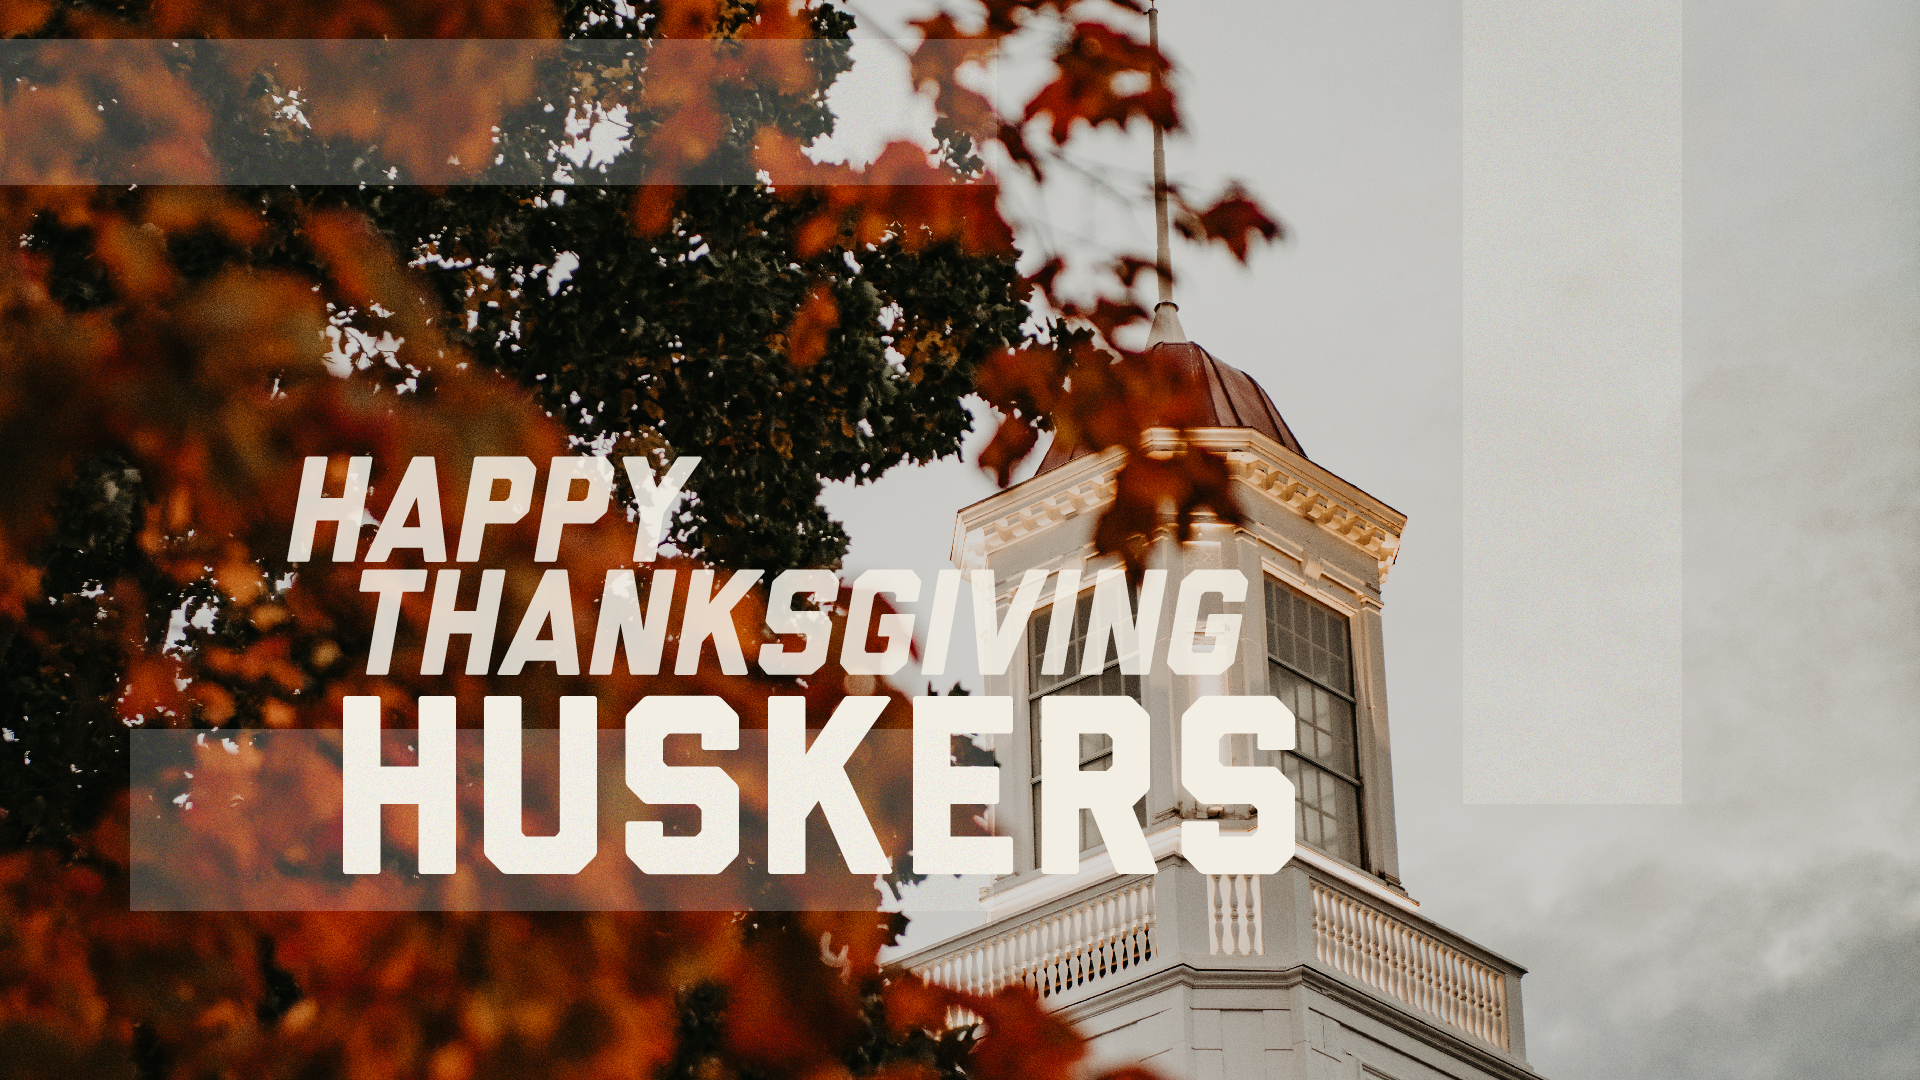 Happy Thanksgiving, Huskers!